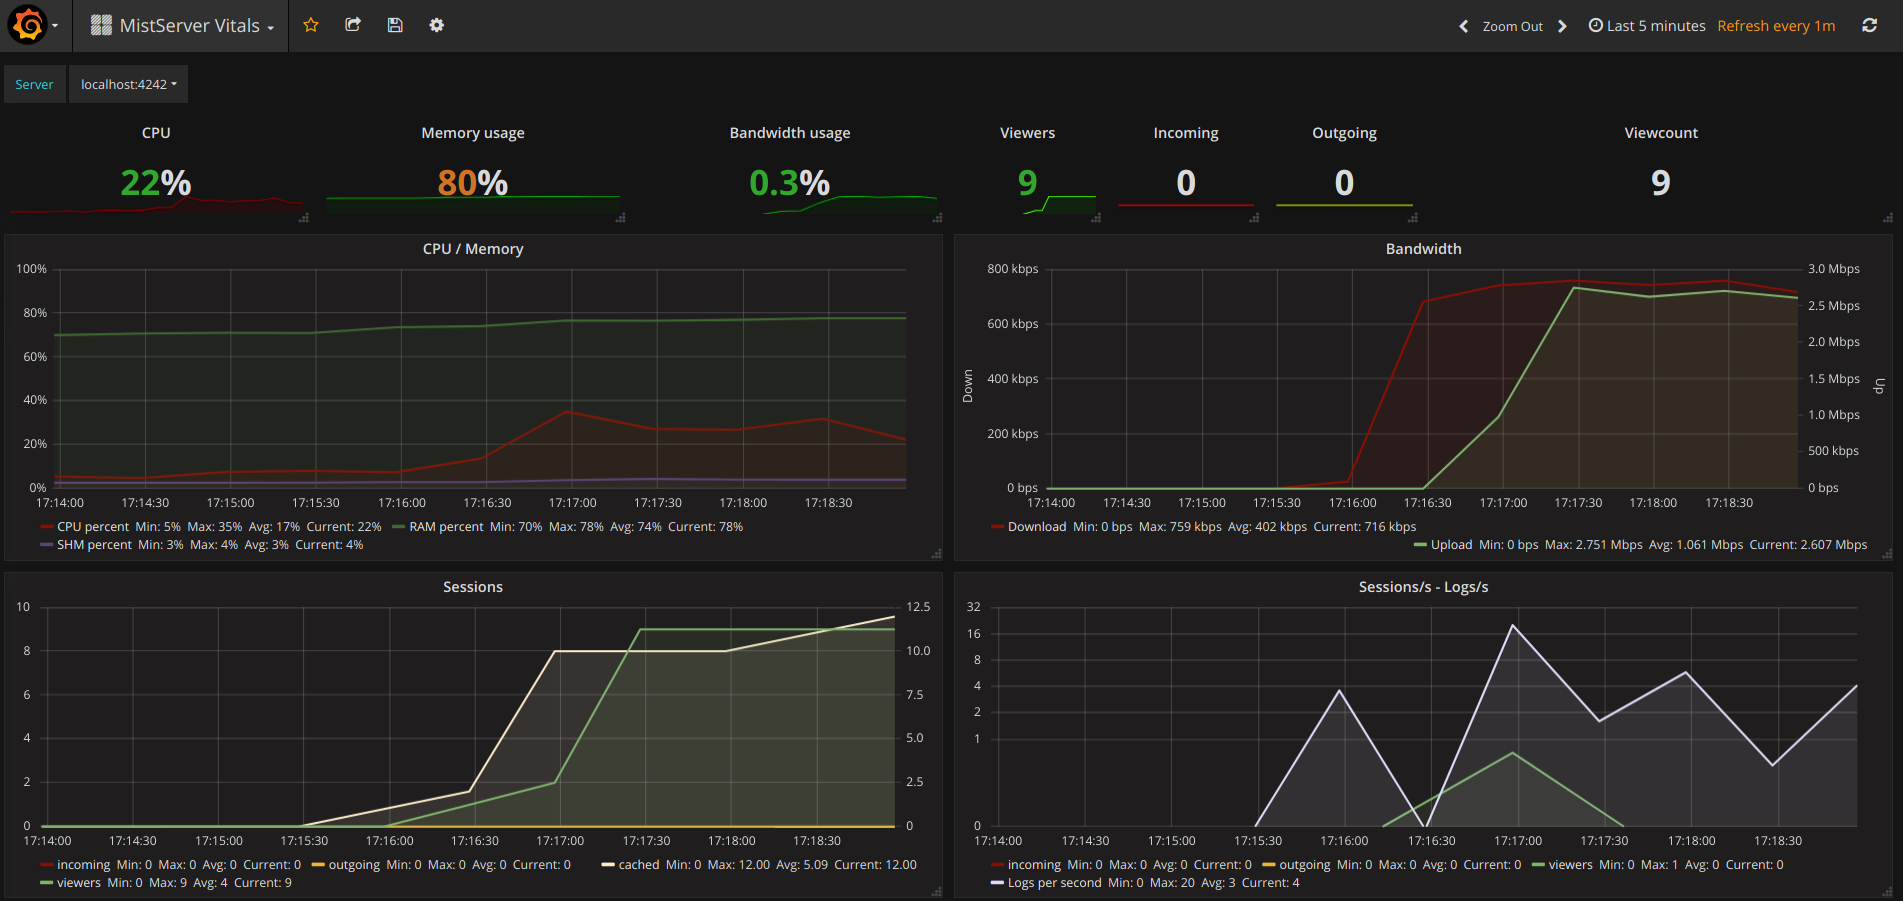 Image of the MistServer Vitals Dashboard in grafana